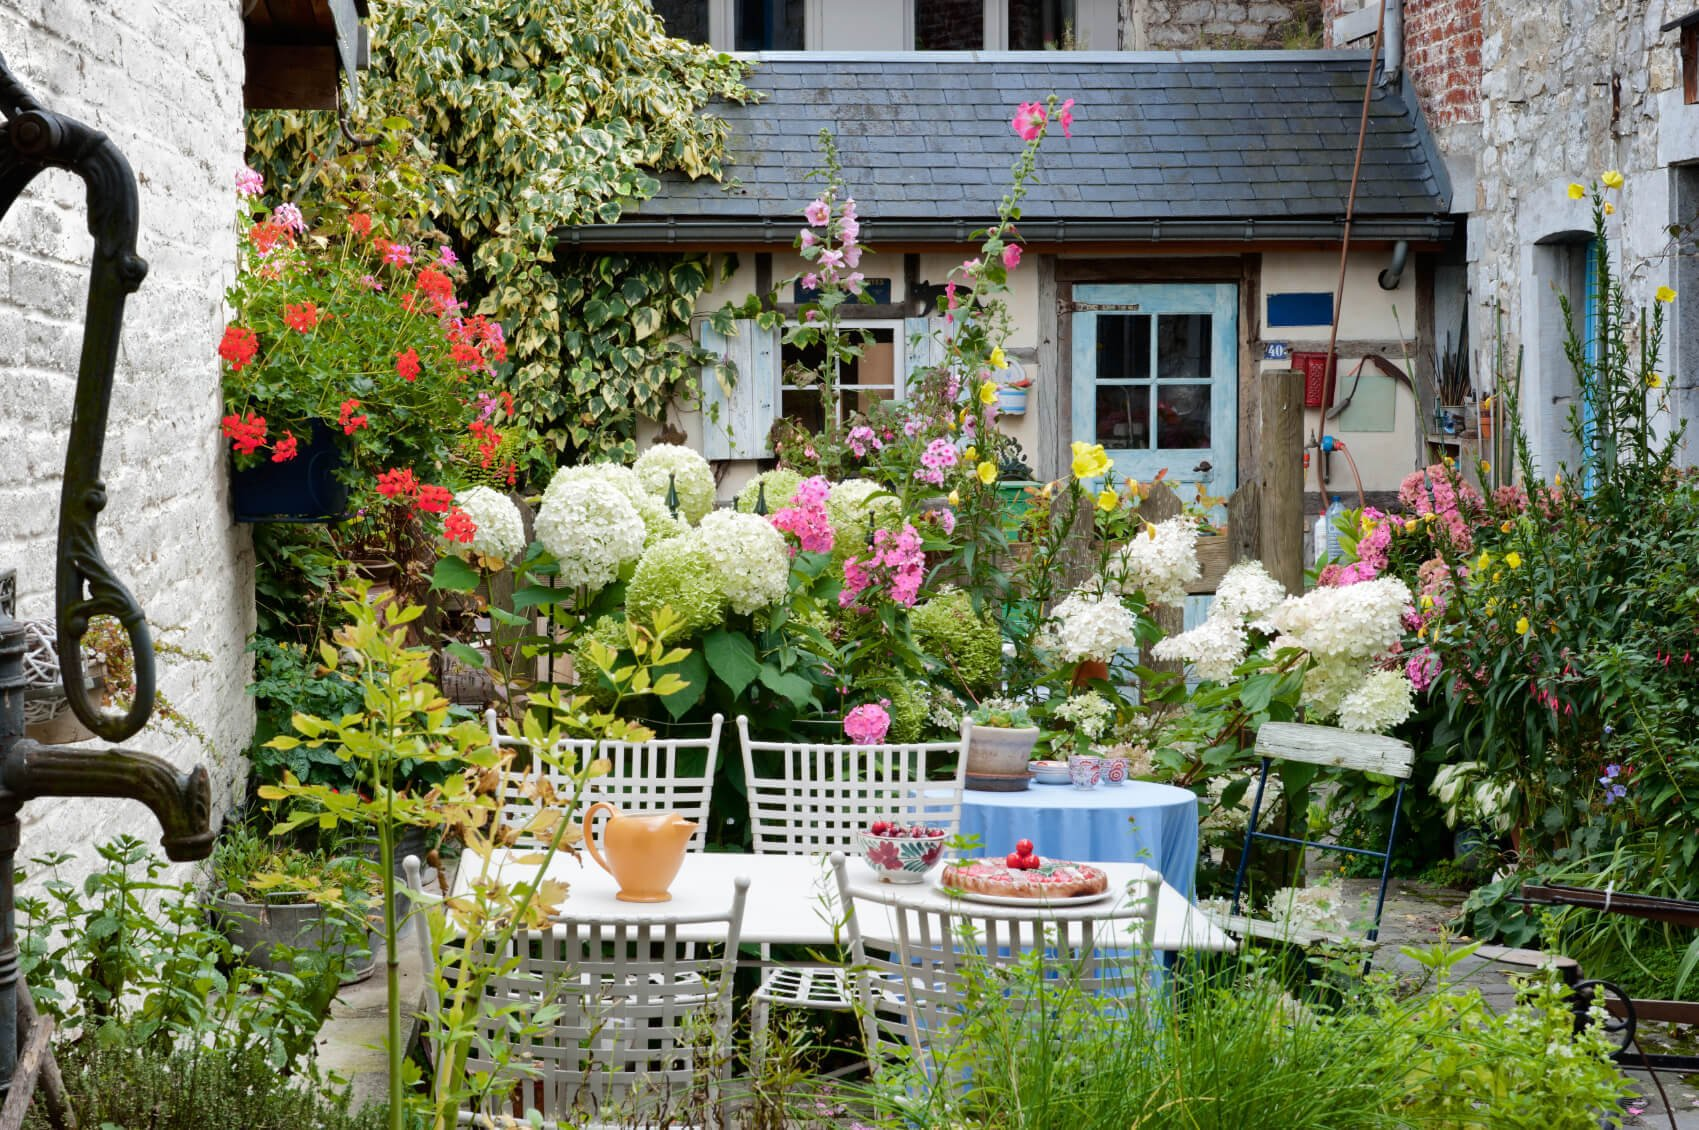 This small space is teaming with a plethora of flowers and plants. Just because a garden is small does not mean the flowers need to be. There are plenty of small plants with large bounties.